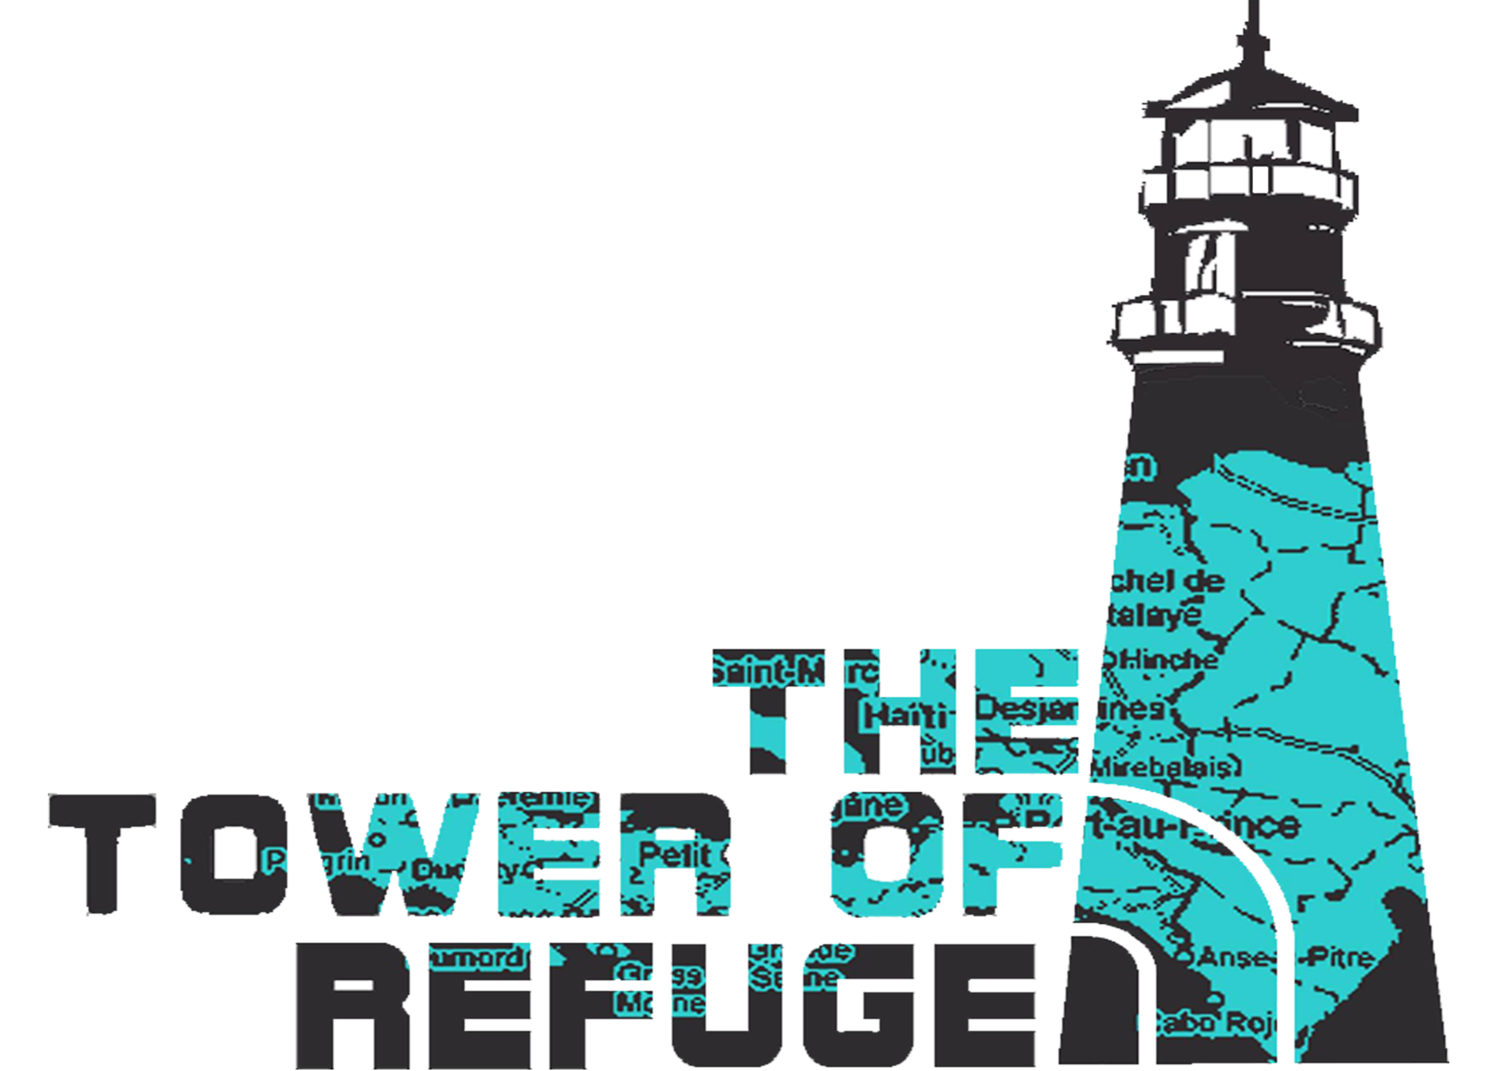 The Tower of Refuge